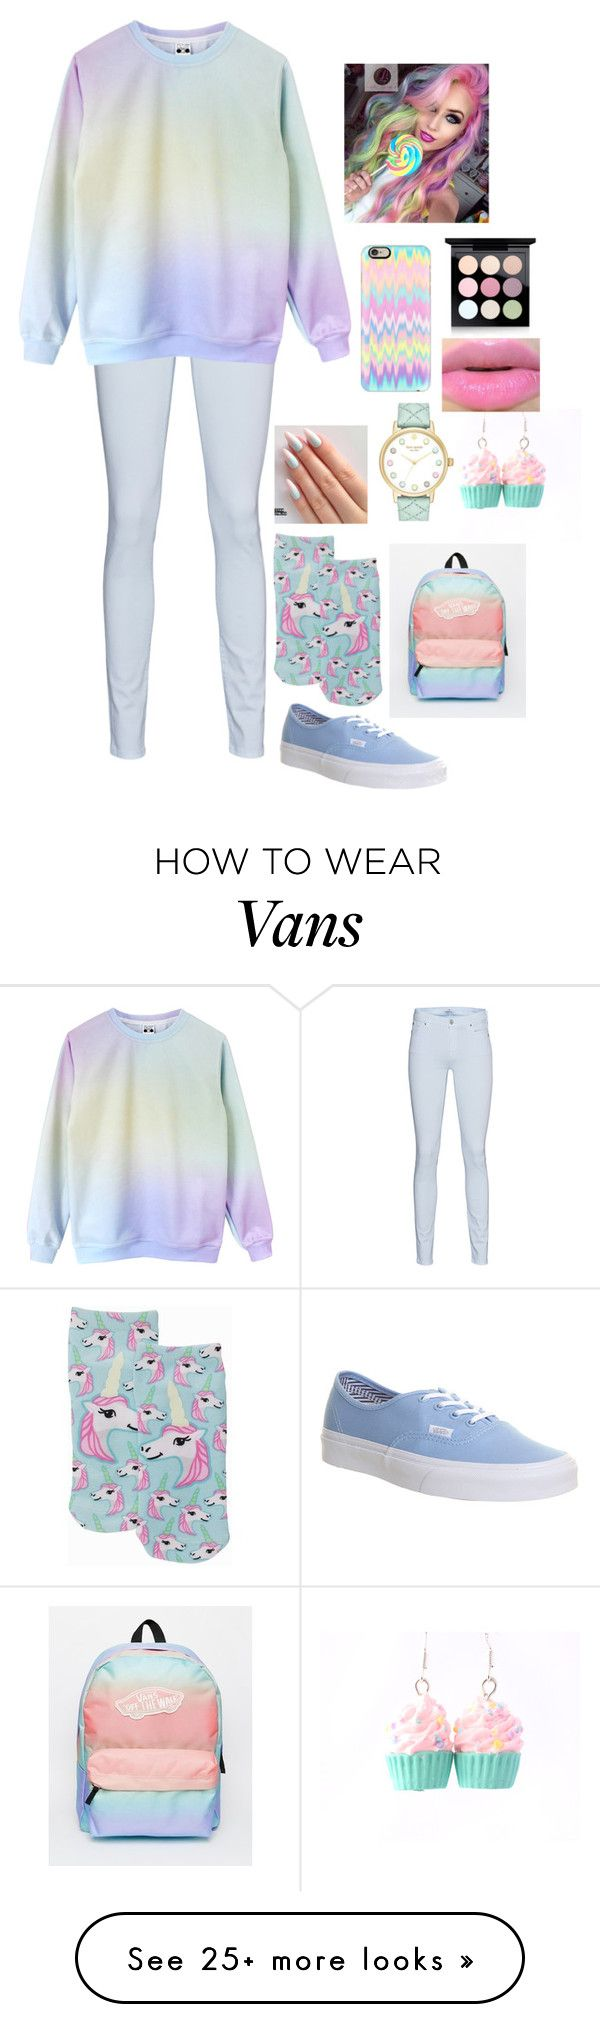 """""""Pastel"""" by a-angel on Polyvore featuring 7 For All Mankind, Living Royal, Vans, Kate Spade, Casetify and MAC Cosmetics"""